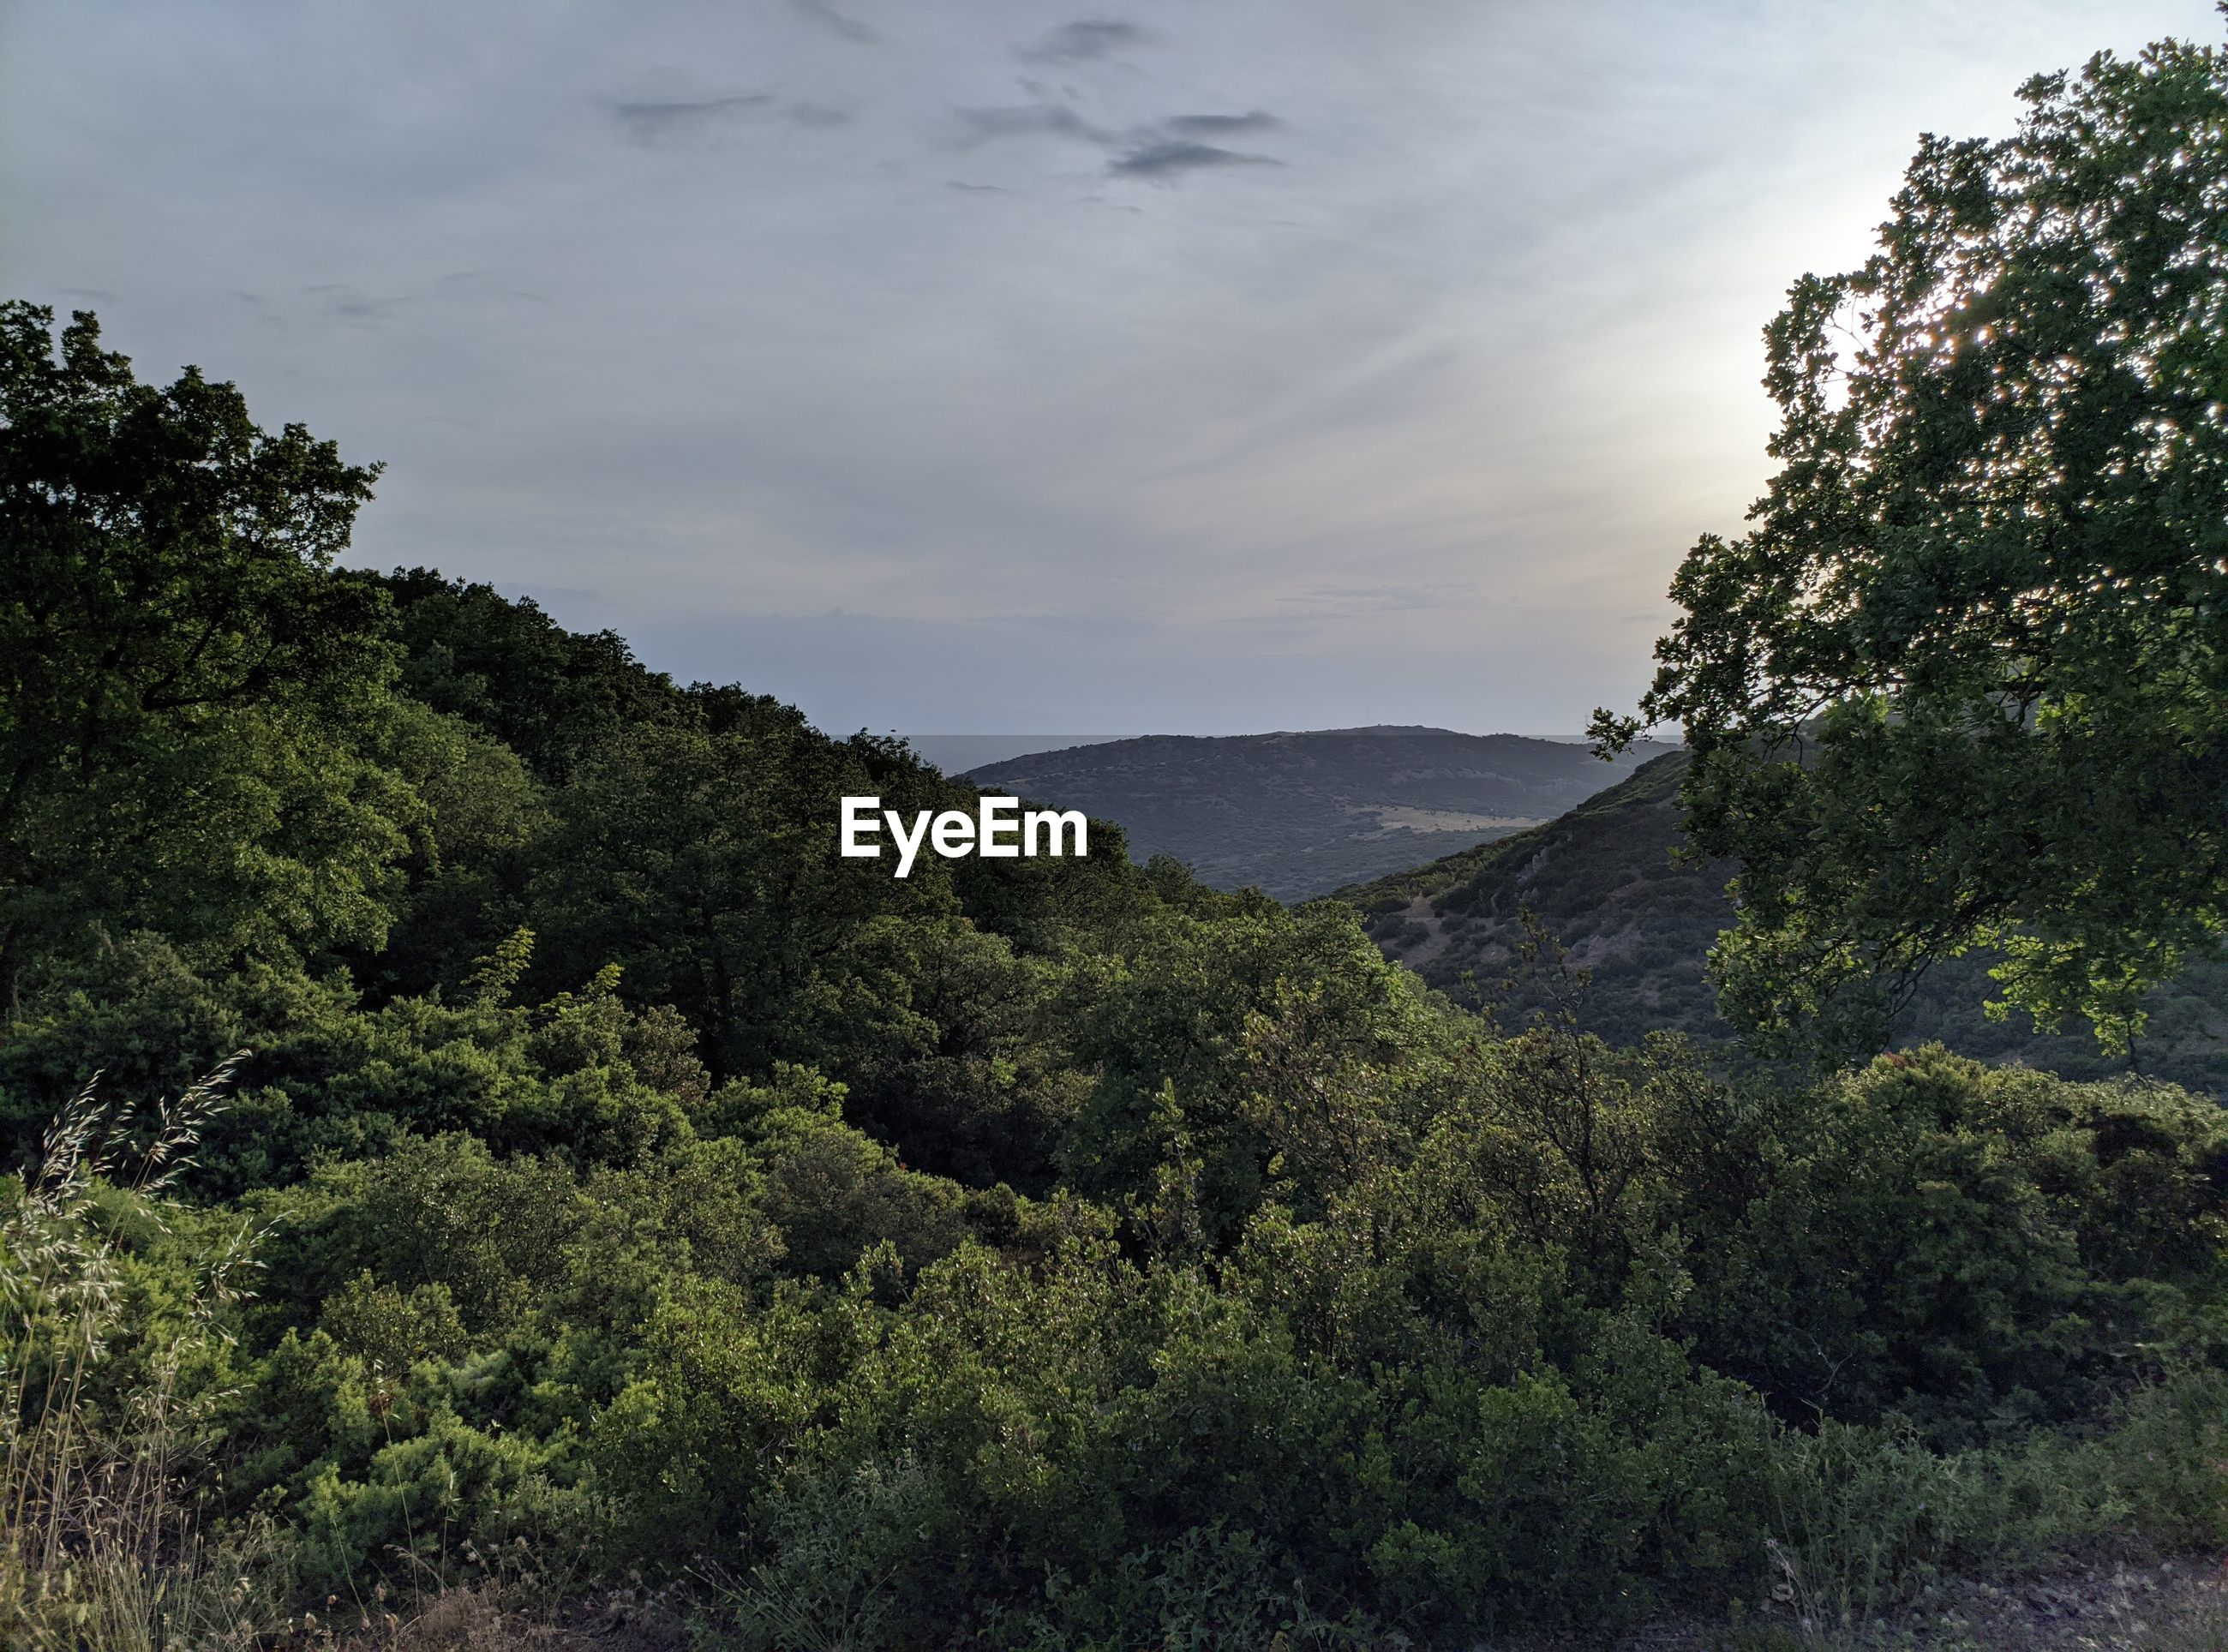 SCENIC VIEW OF TREES GROWING ON MOUNTAIN AGAINST SKY